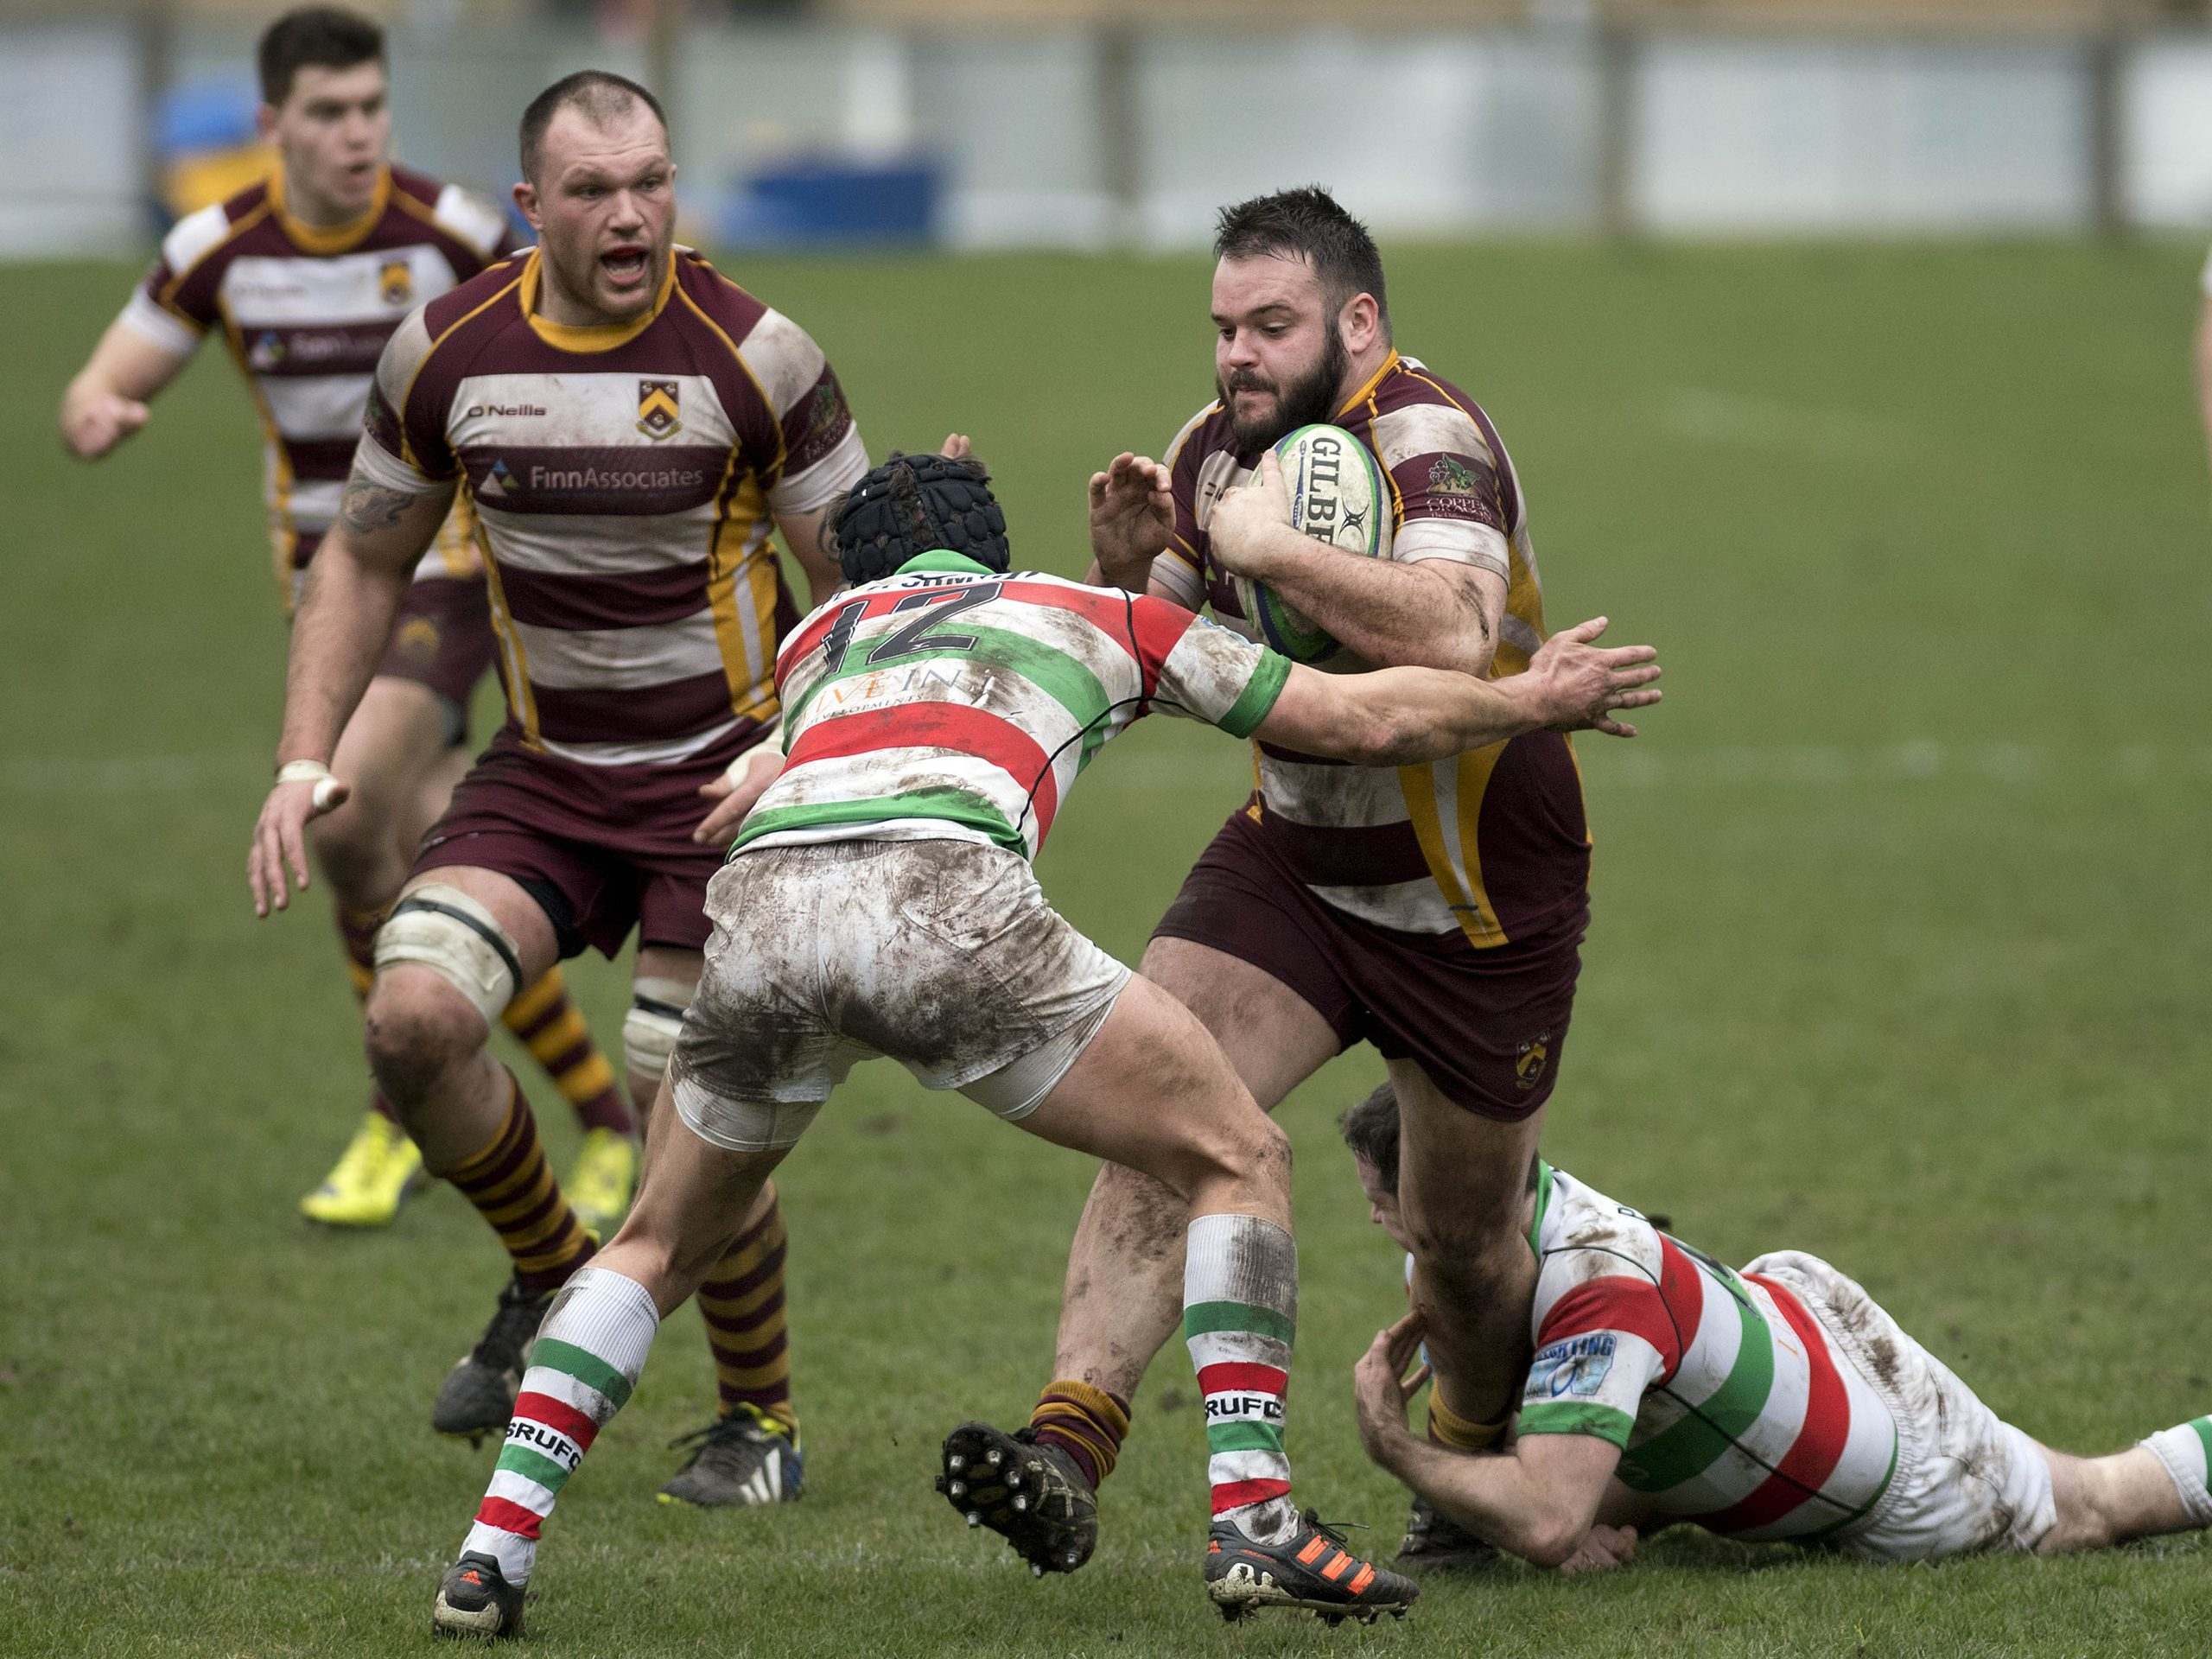 Hudds_v_Stockport_LOW_RES_(14)